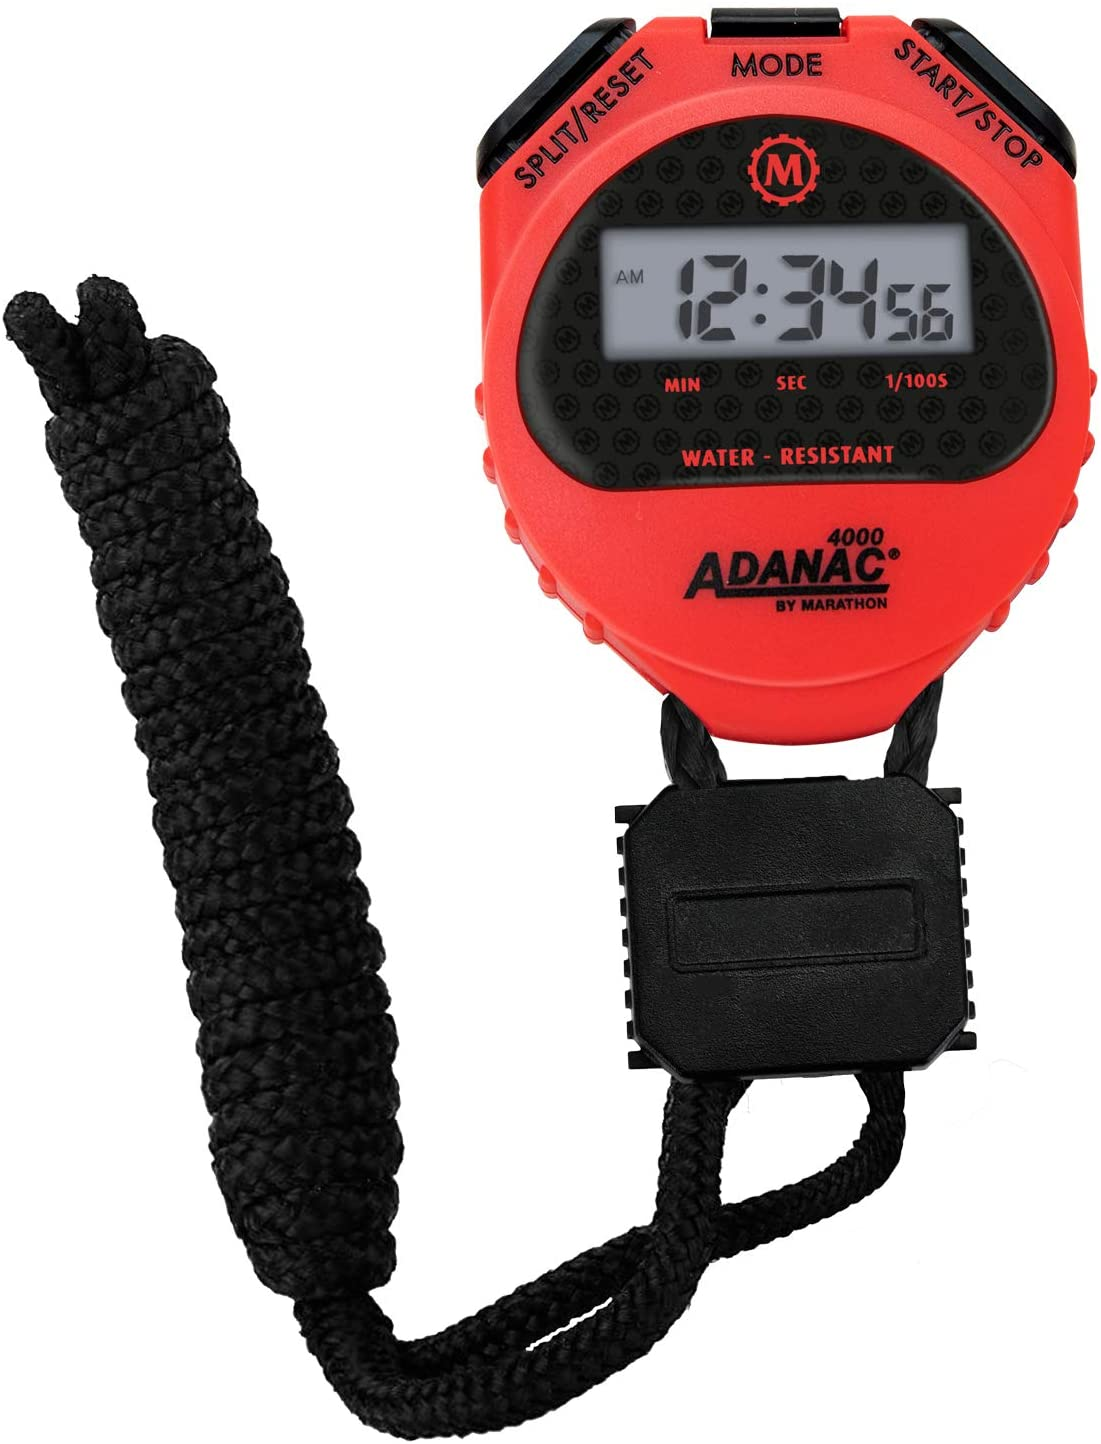 Marathon Adanac 4000 Digital Stopwatch Timer - Large Display with Date Time Alarm | Waterproof Dust and Shock Resistant | Lanyard for Fitness Sport Coaches - Red